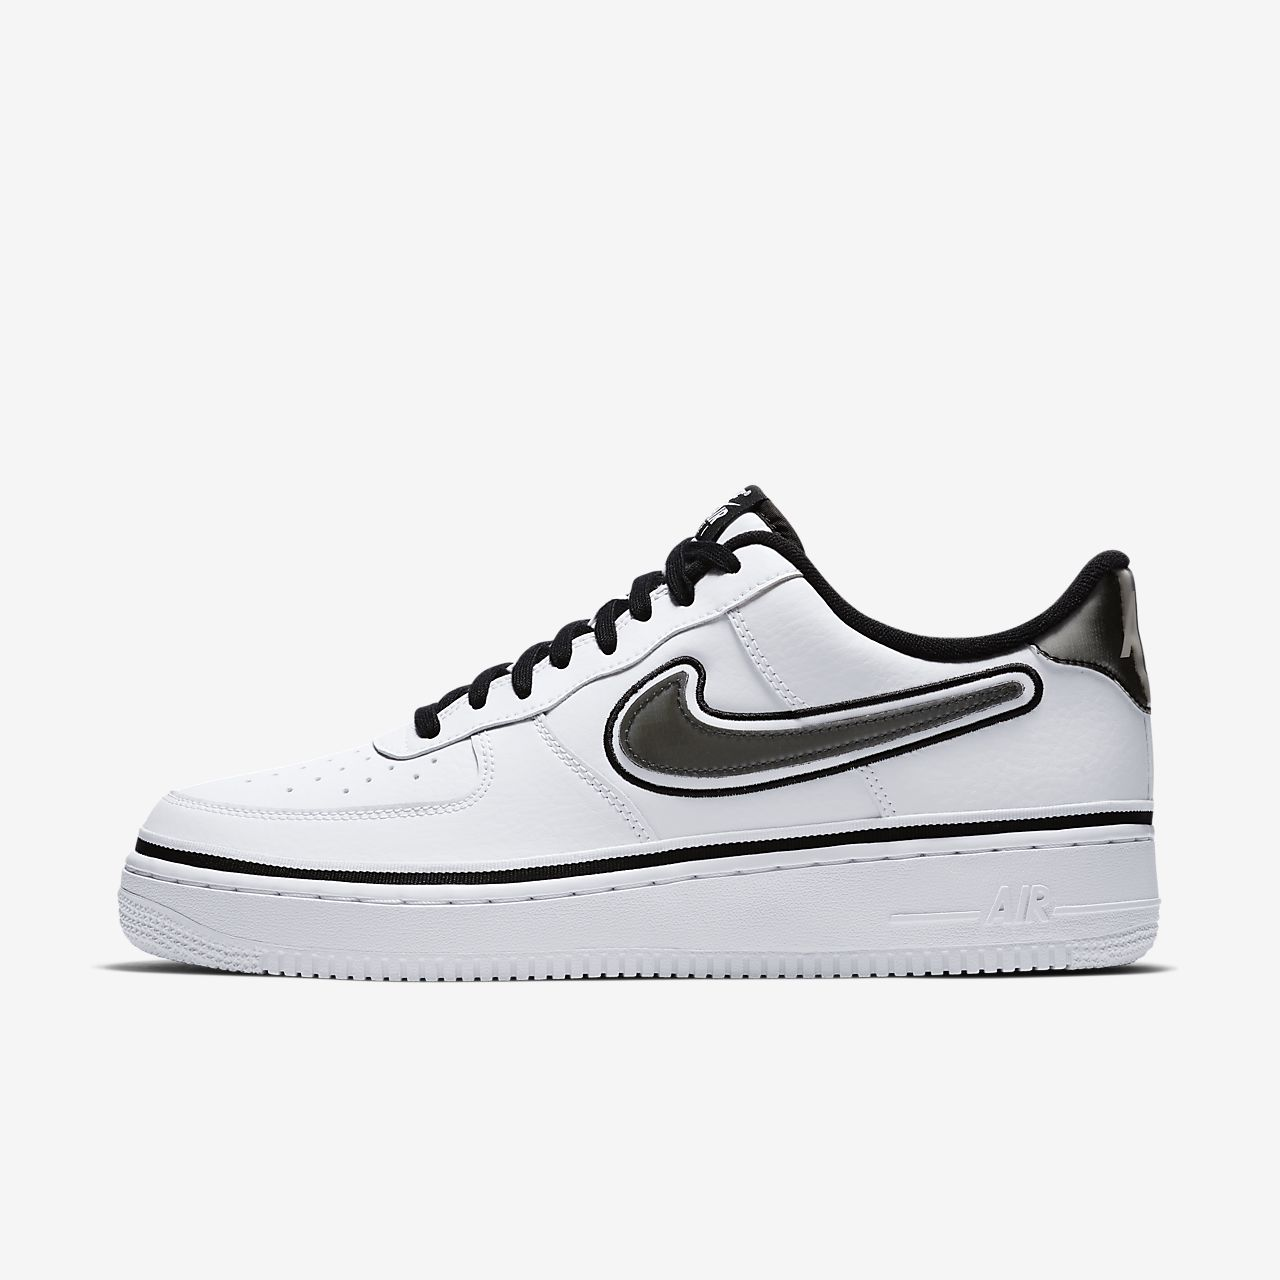 premium selection a74f0 e12d7 ... nike air firce 1 Nike Air Force 1  u002707 LV8 Sport NBA ...